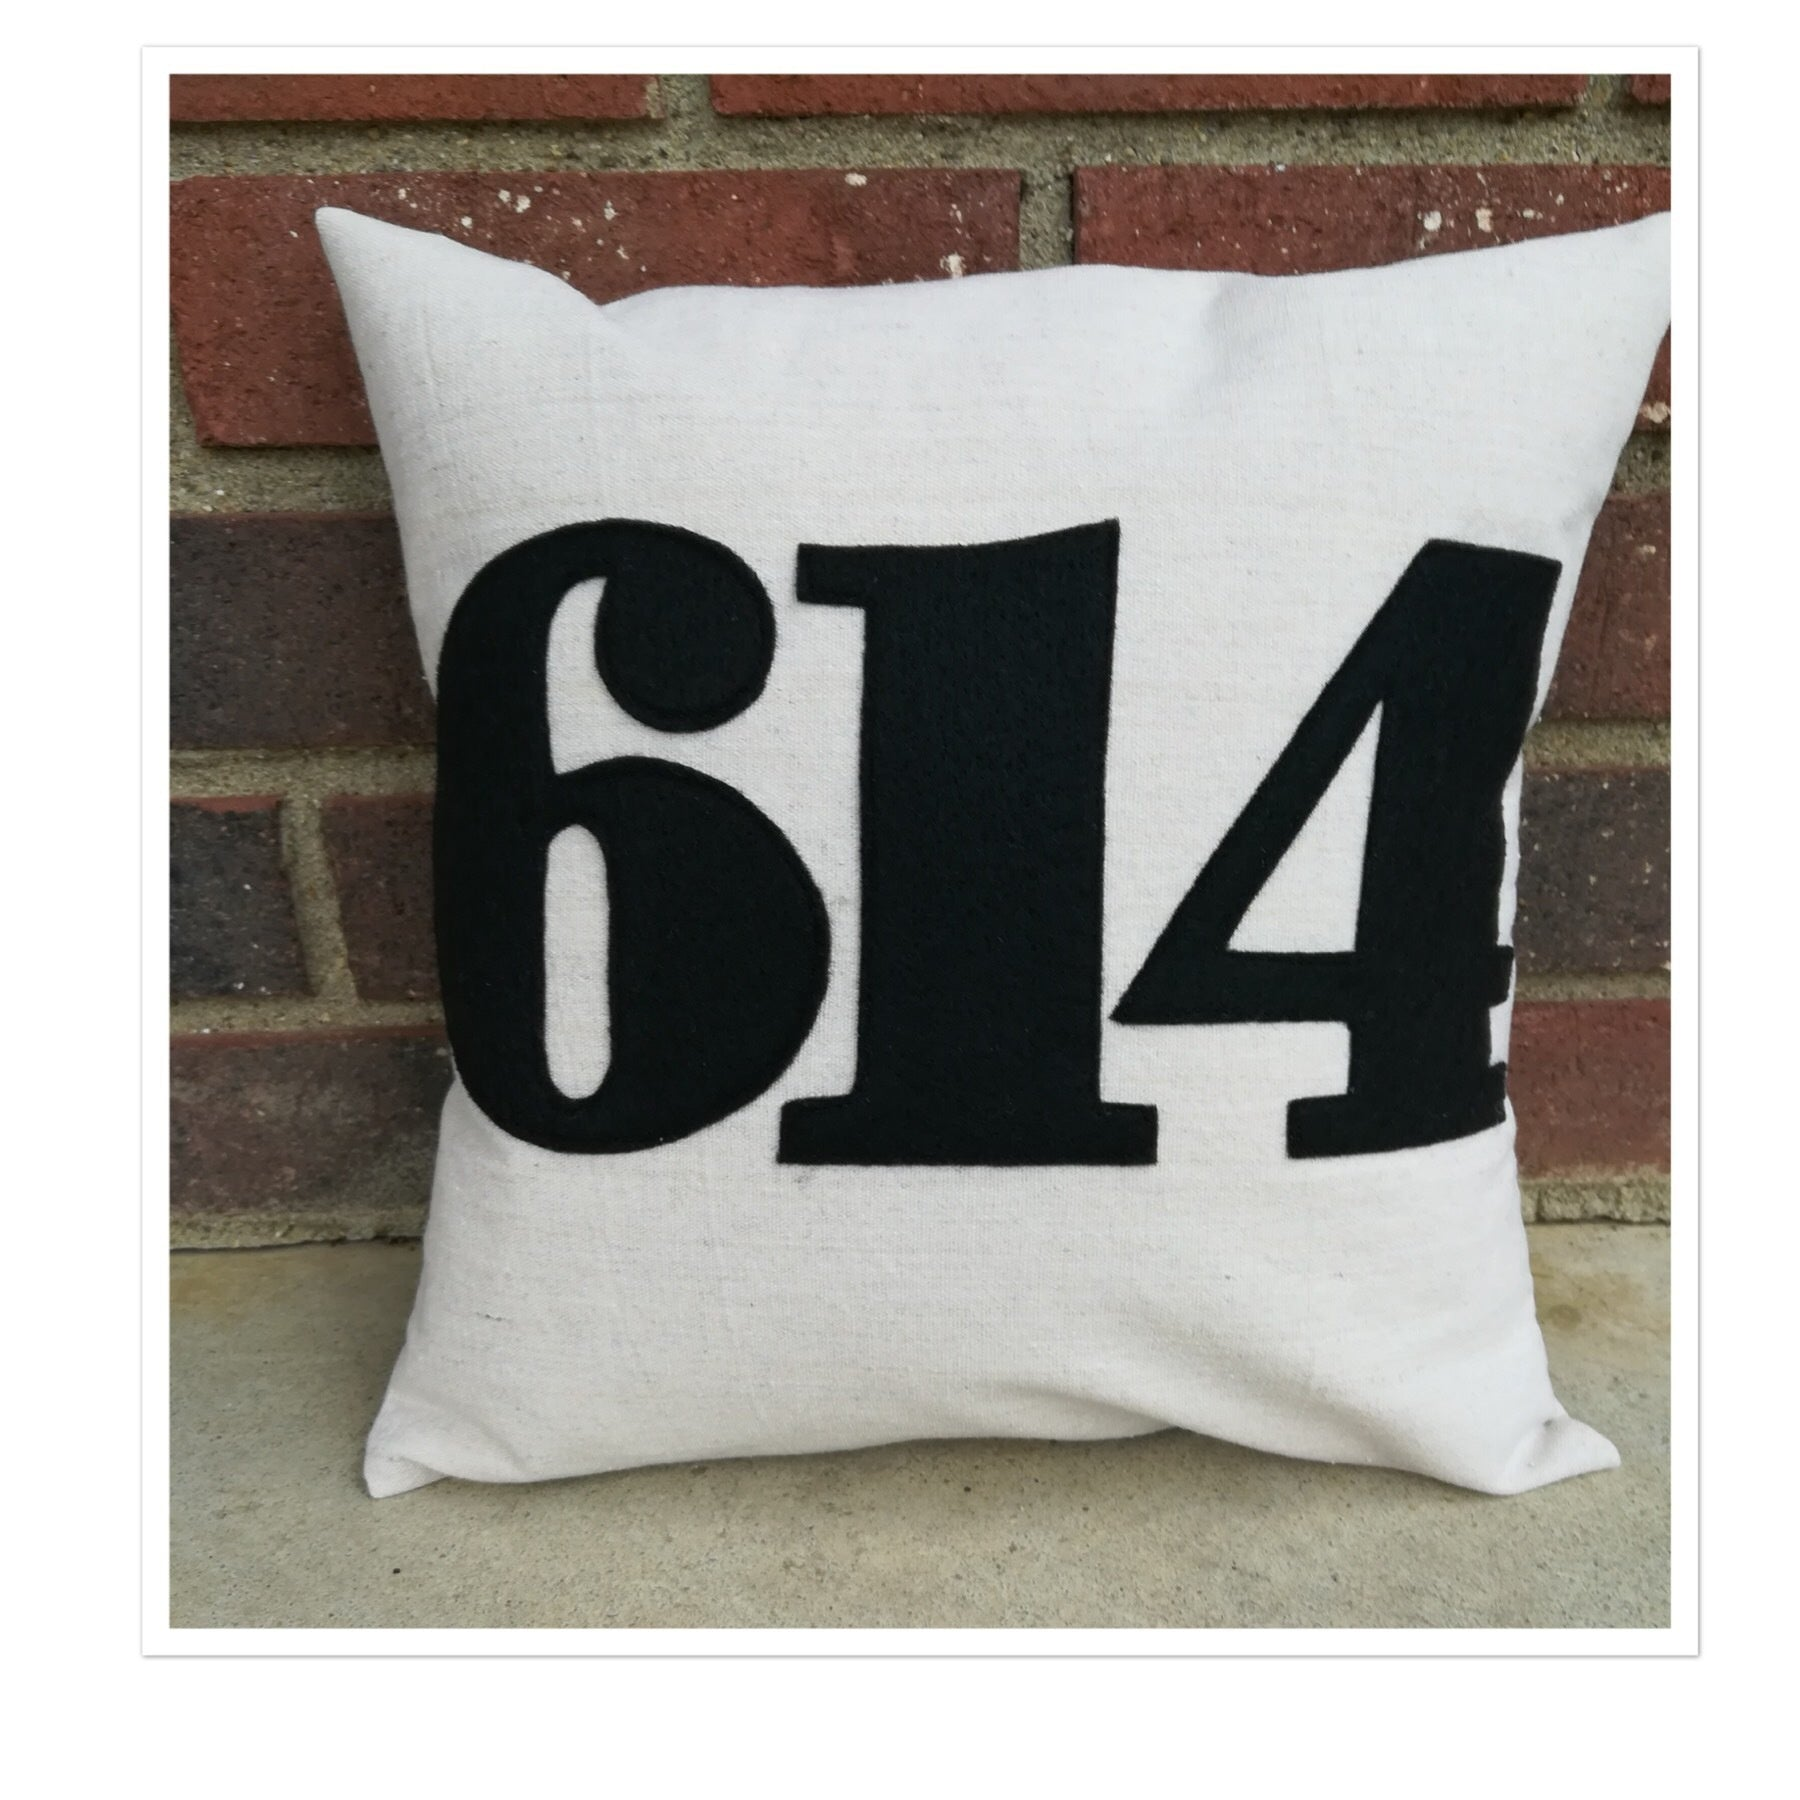 614 Area Code Pillow 12 Inch